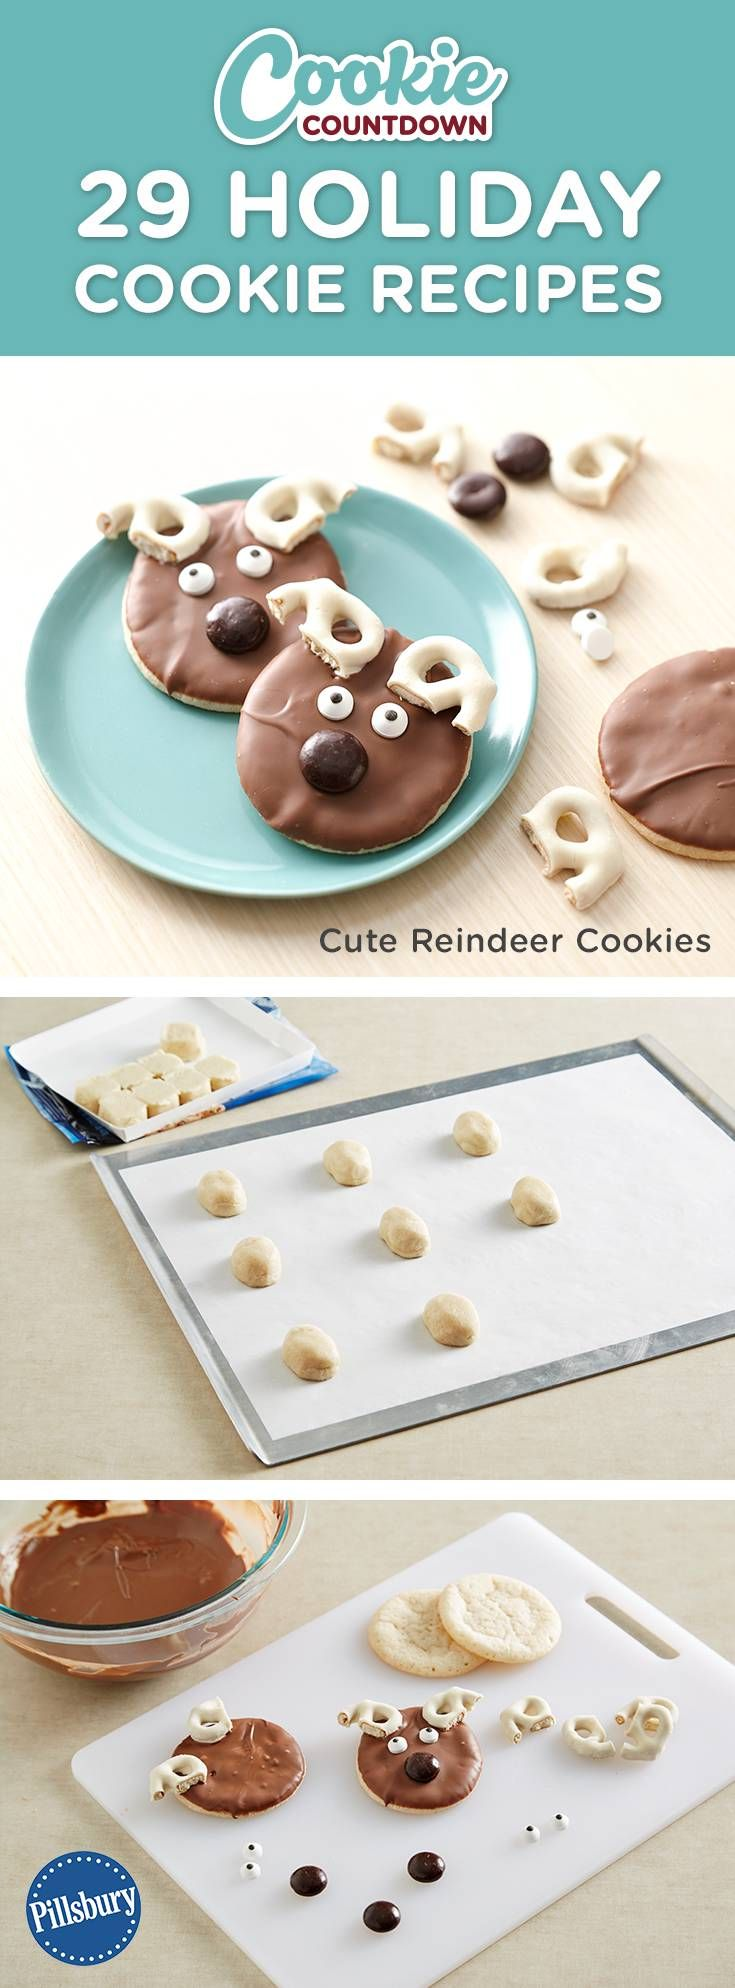 Get this fun Reindeer cookie recipe by signing up for our Pillsbury Cookie Countdown! You'll recieve the cutest cookie recipes every day leading up to Christmas. Learn how to decorate your favorite easy recipes. Perfect for if you are hosting a cookie swap, exchange or party.